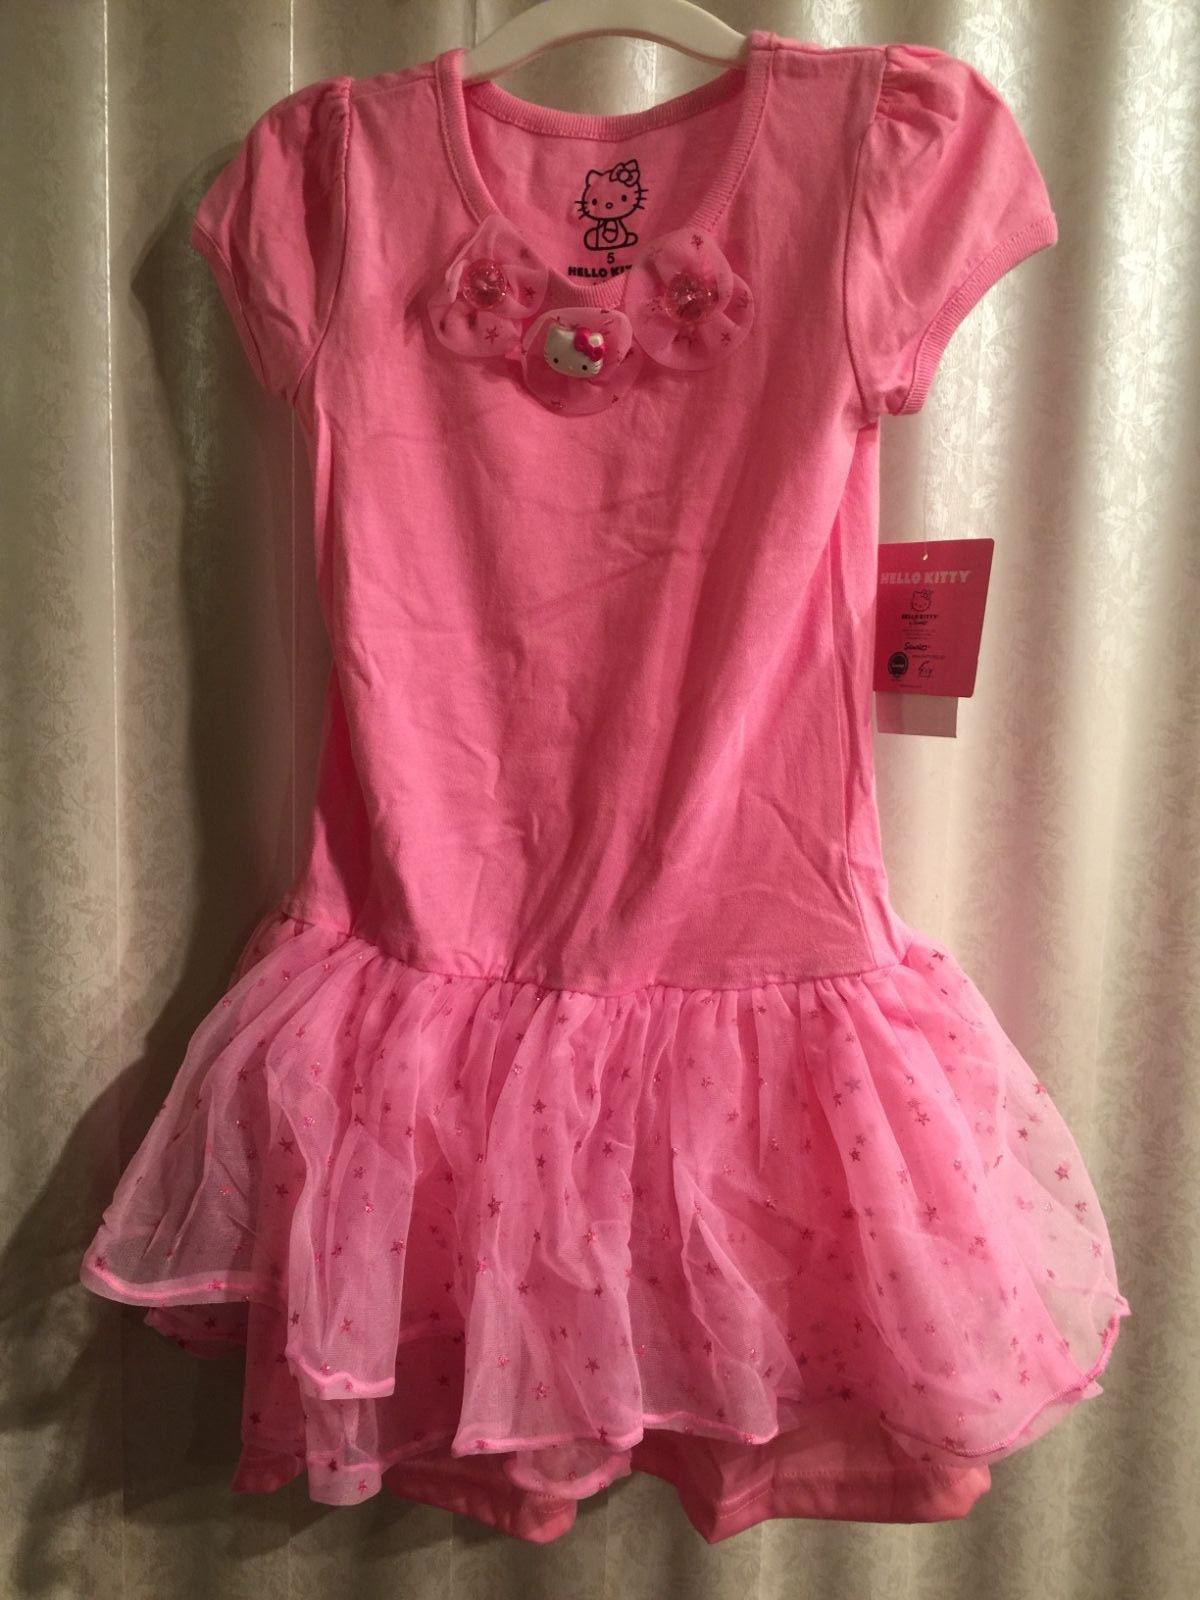 87a6a39e1 Hello Kitty Pink Ruffle Girls Dress Sparkle and 19 similar items